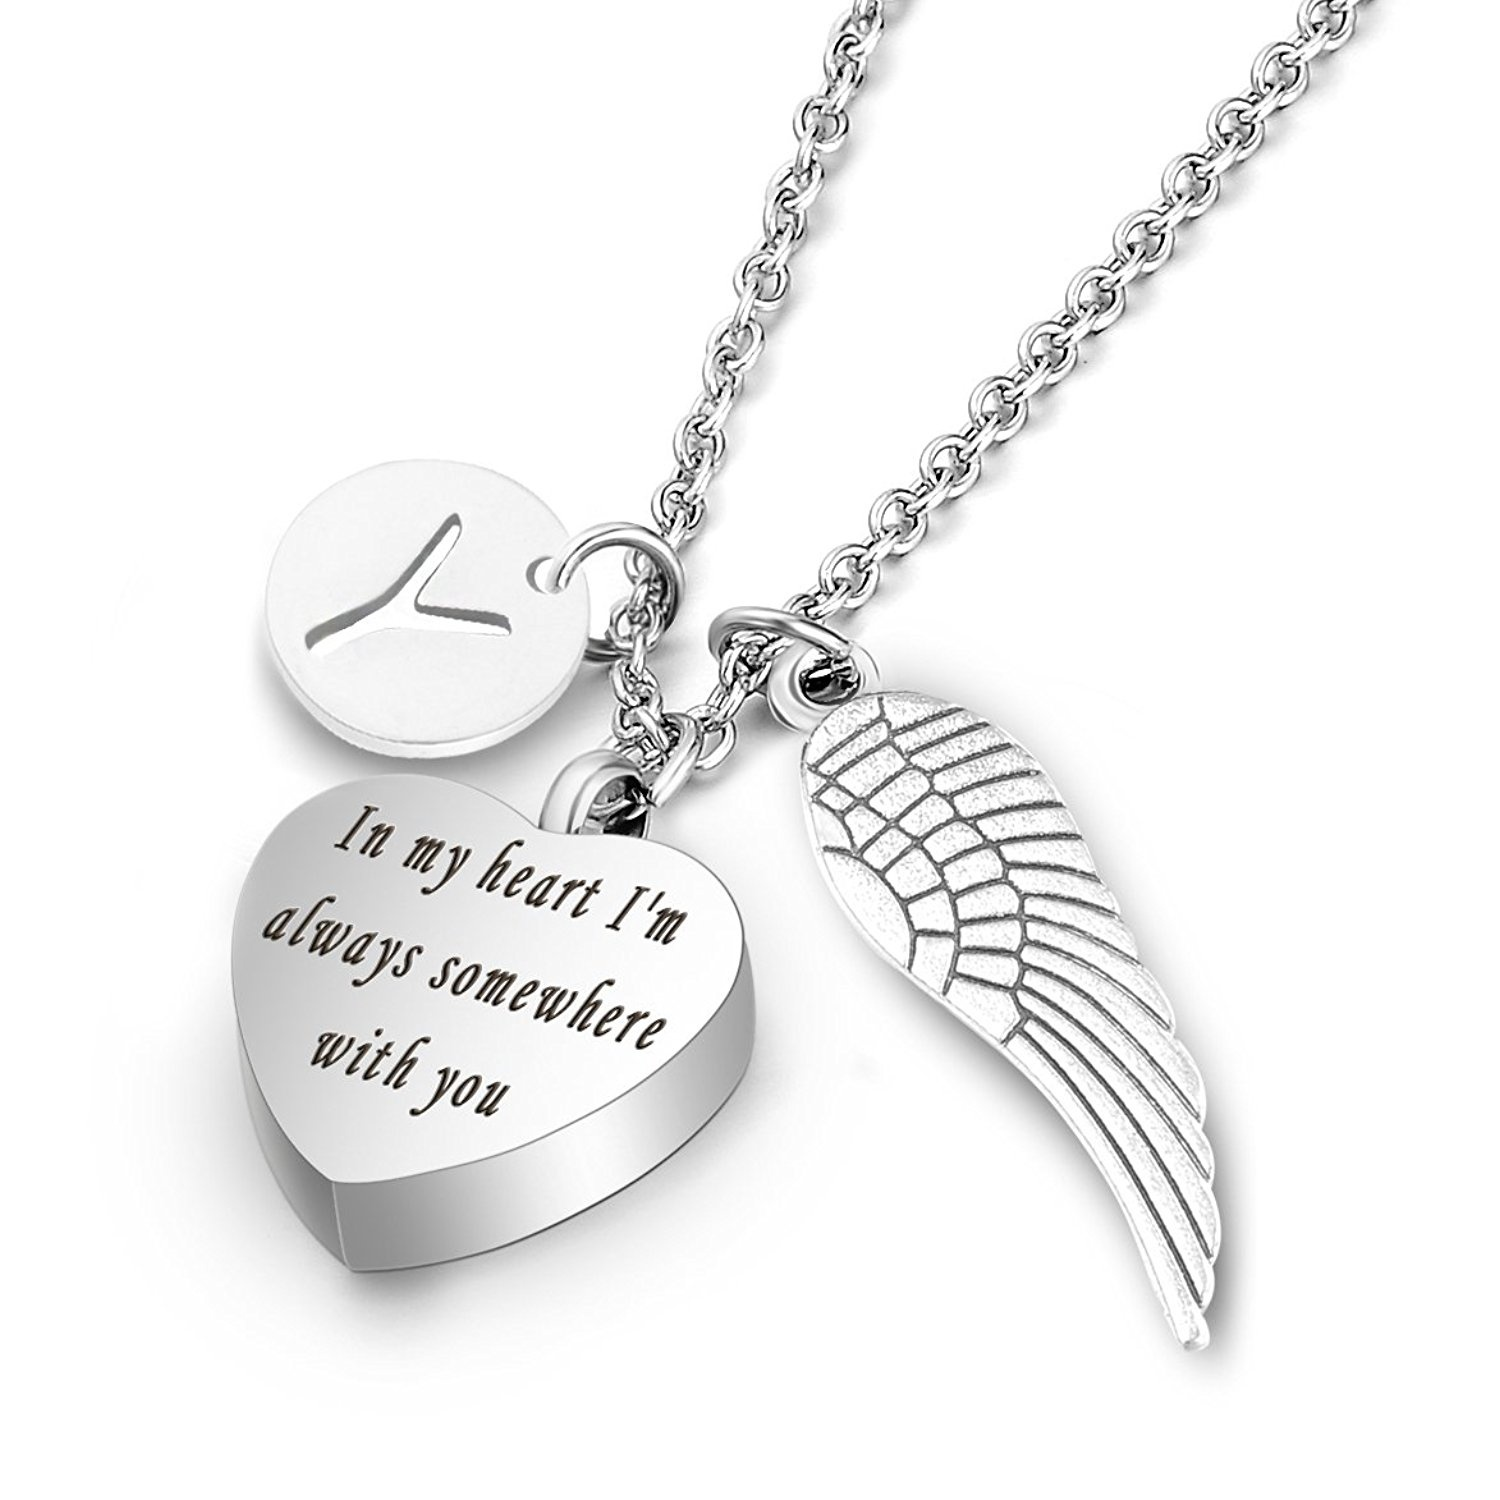 dp heart charmsstory ashes necklaces memorial angel you holder pendant urn amazon cremation xaqhl necklace com wings miss jewelry keepsake